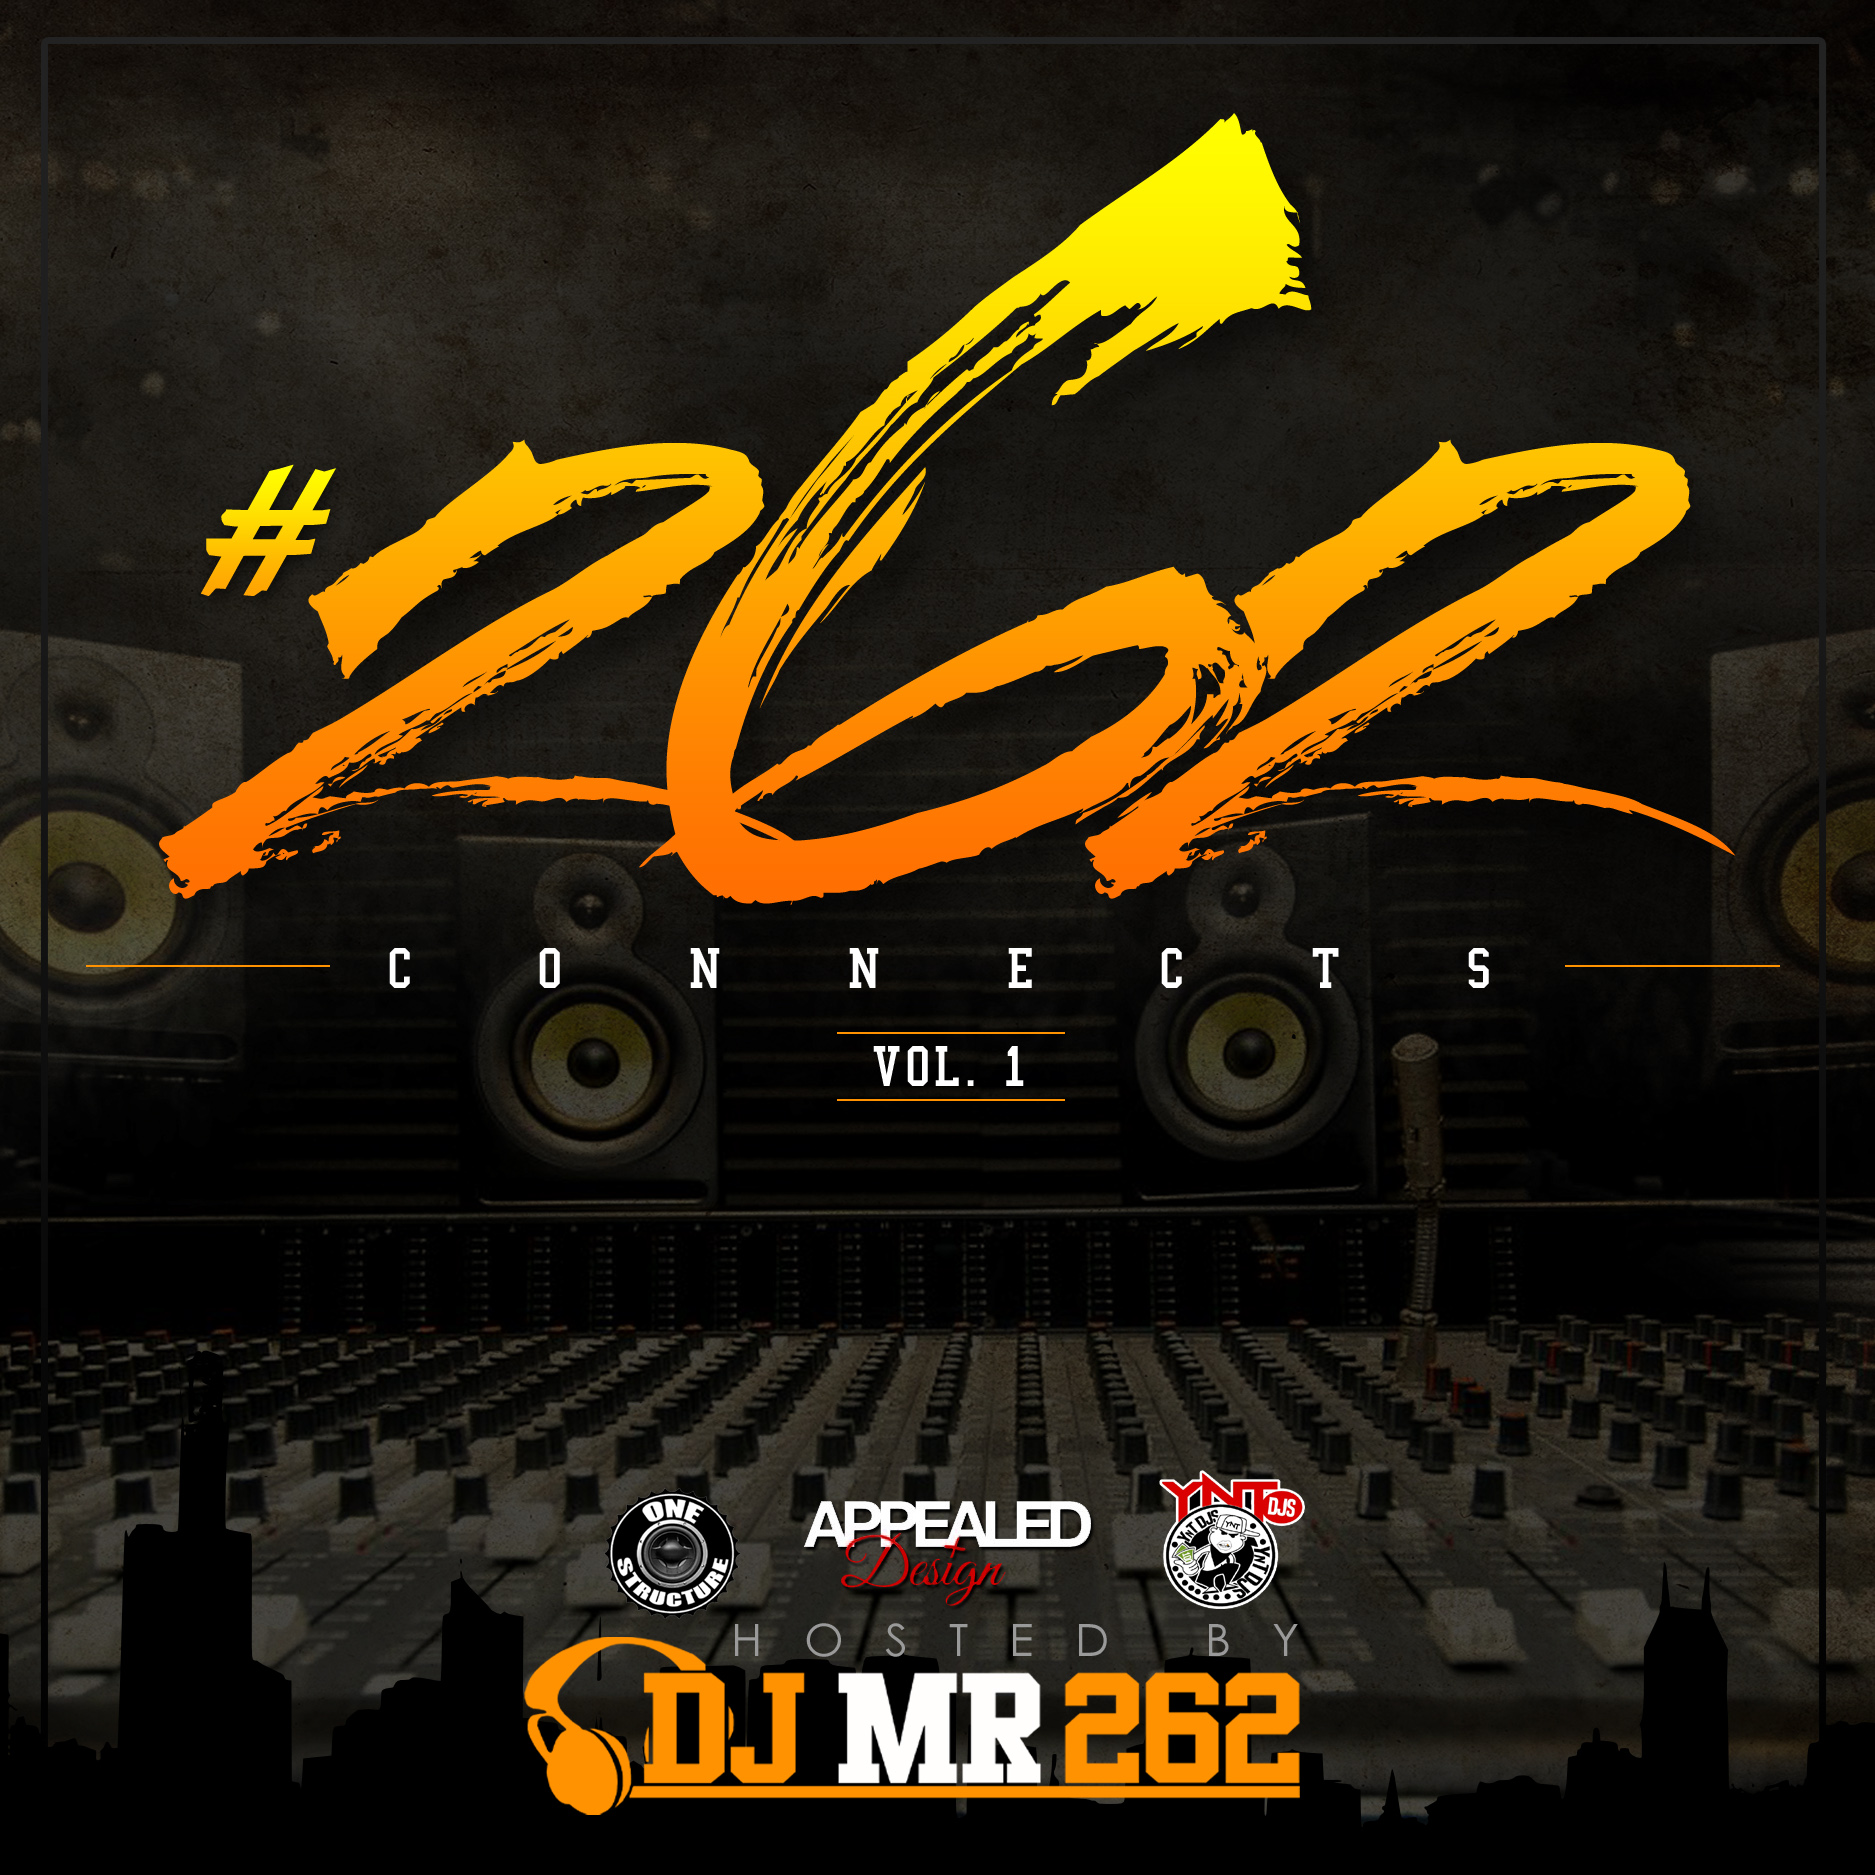 262 CONNECTS FINAL DJ MR262   CONNECTS V.1 [ALBUM COVER]